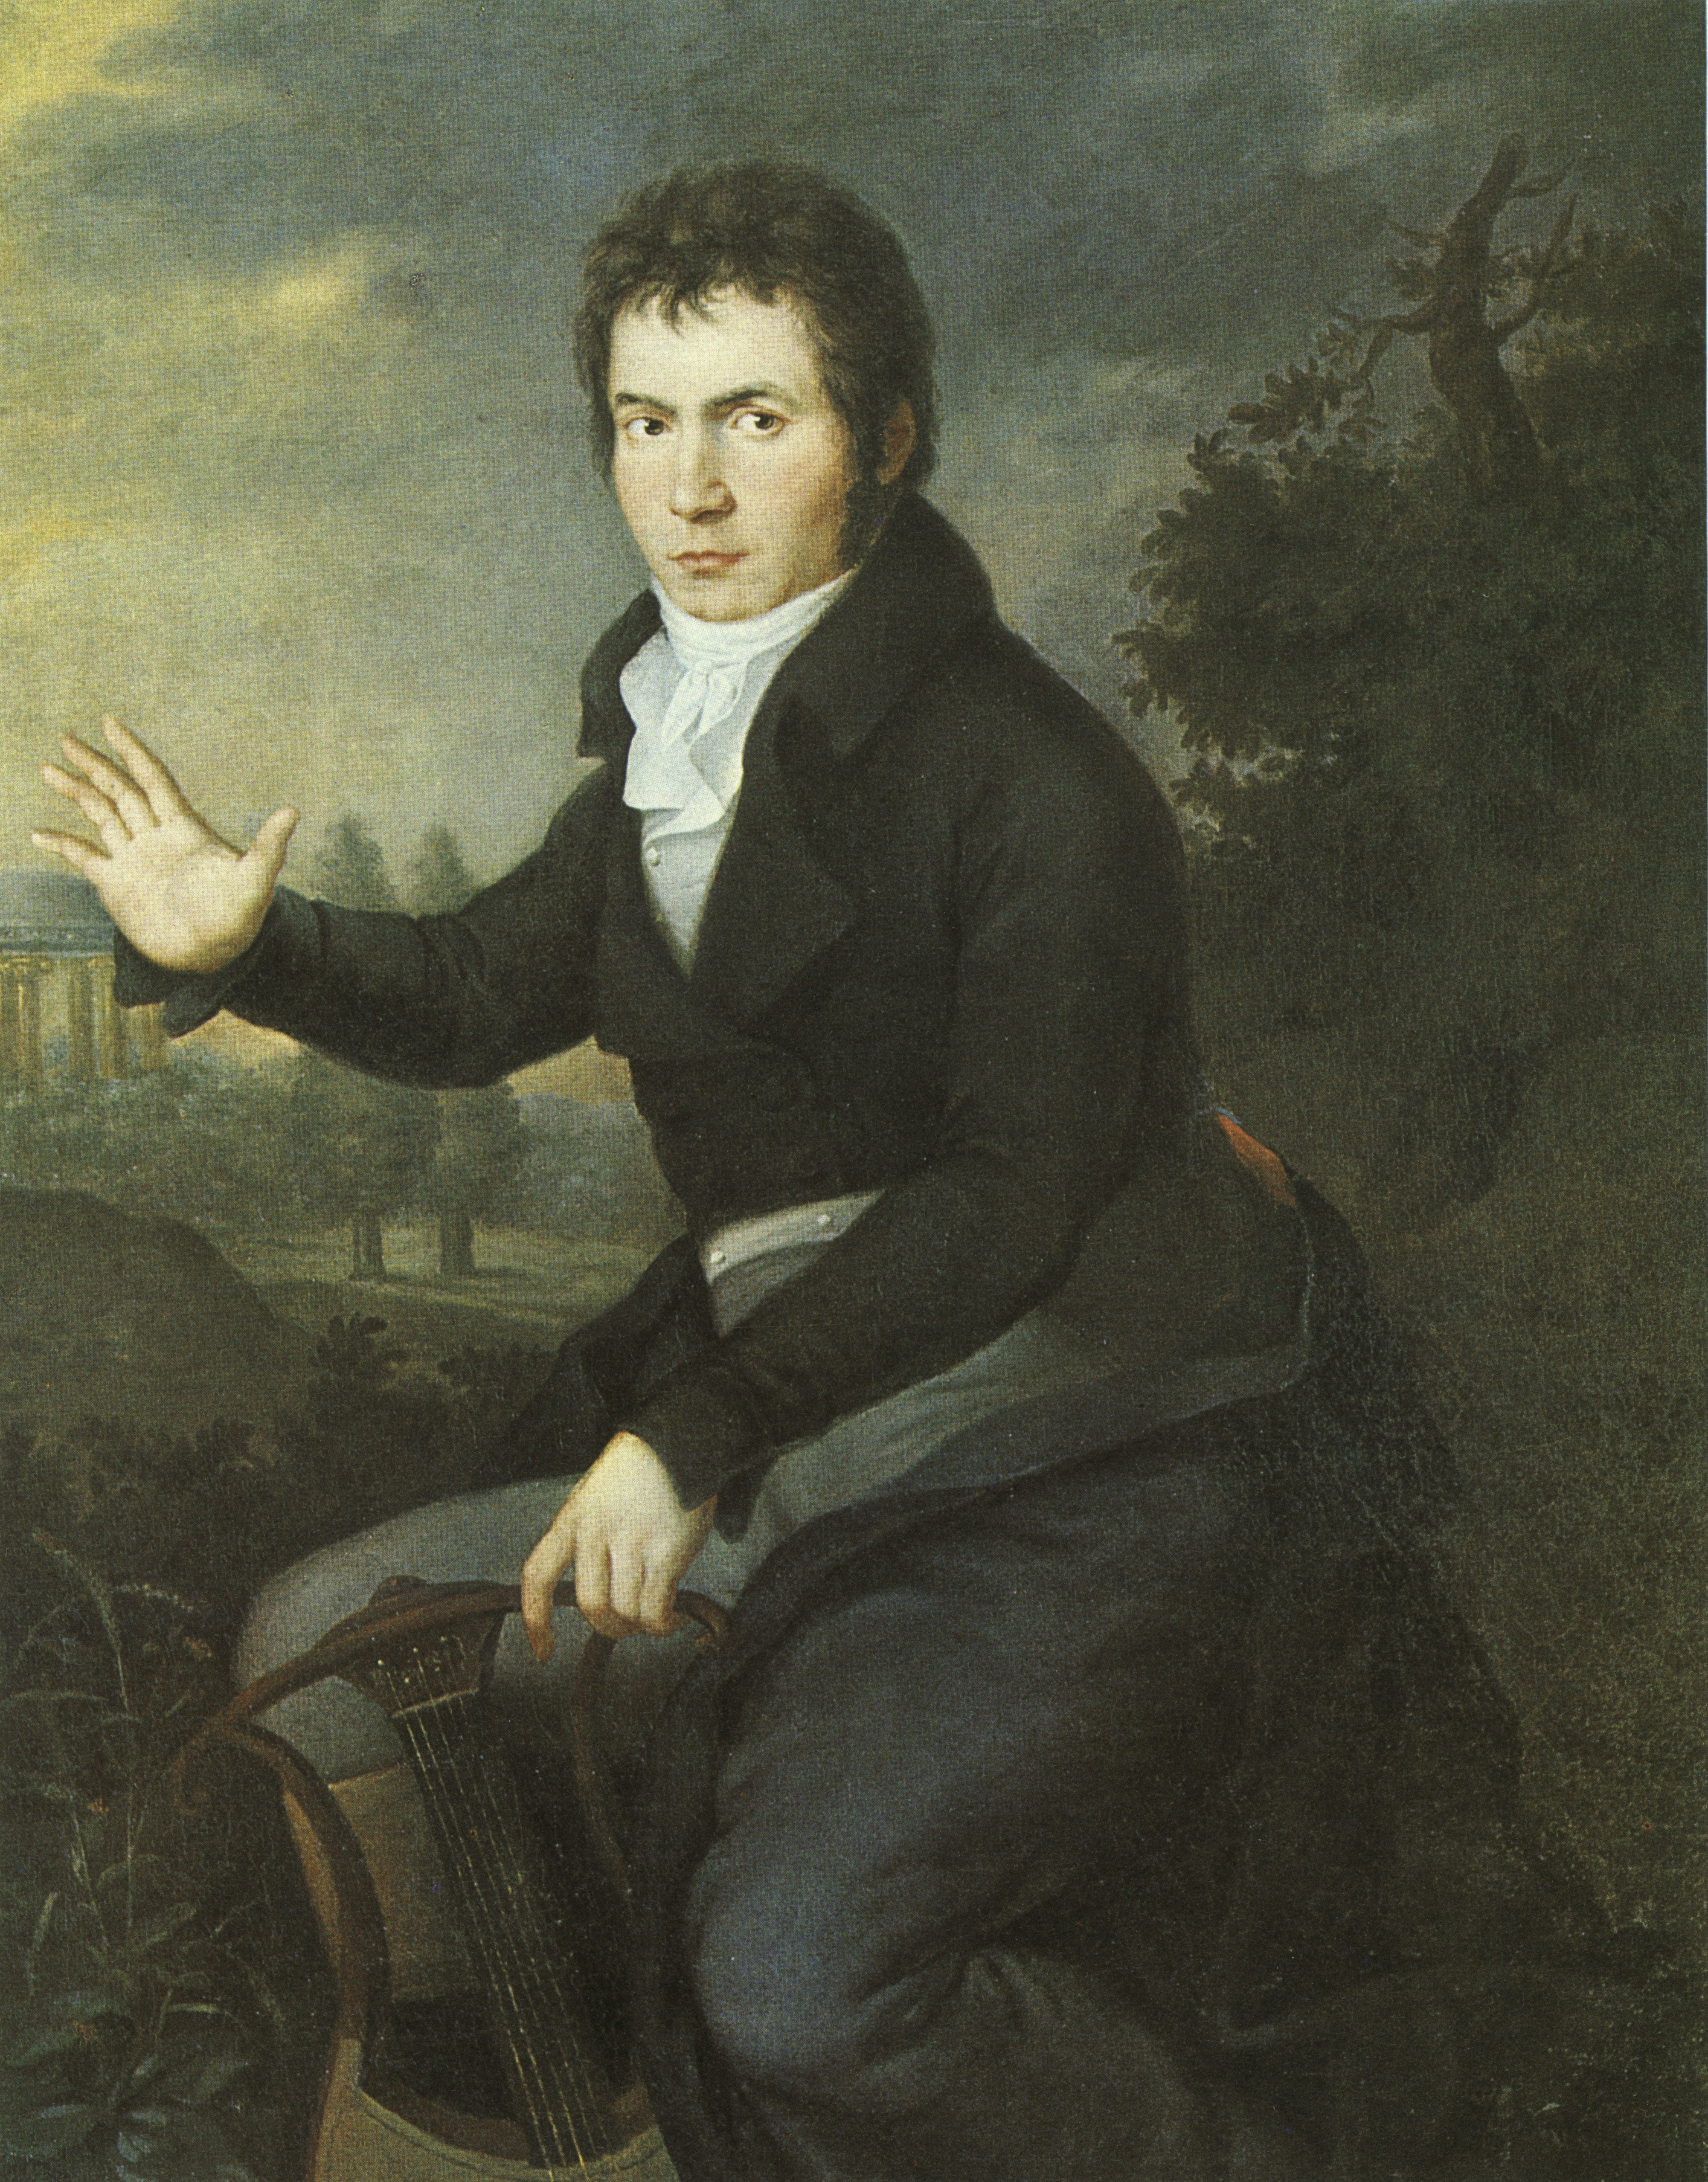 """beethovens life and music after napoleon essay His condition was not only affecting his musical output but also his social life,  which was very important to him  the original title of which was """"bonaparte   when beethoven was looking to secure his financial position in vienna, the  archduke rudolph was among three members of society who took over."""